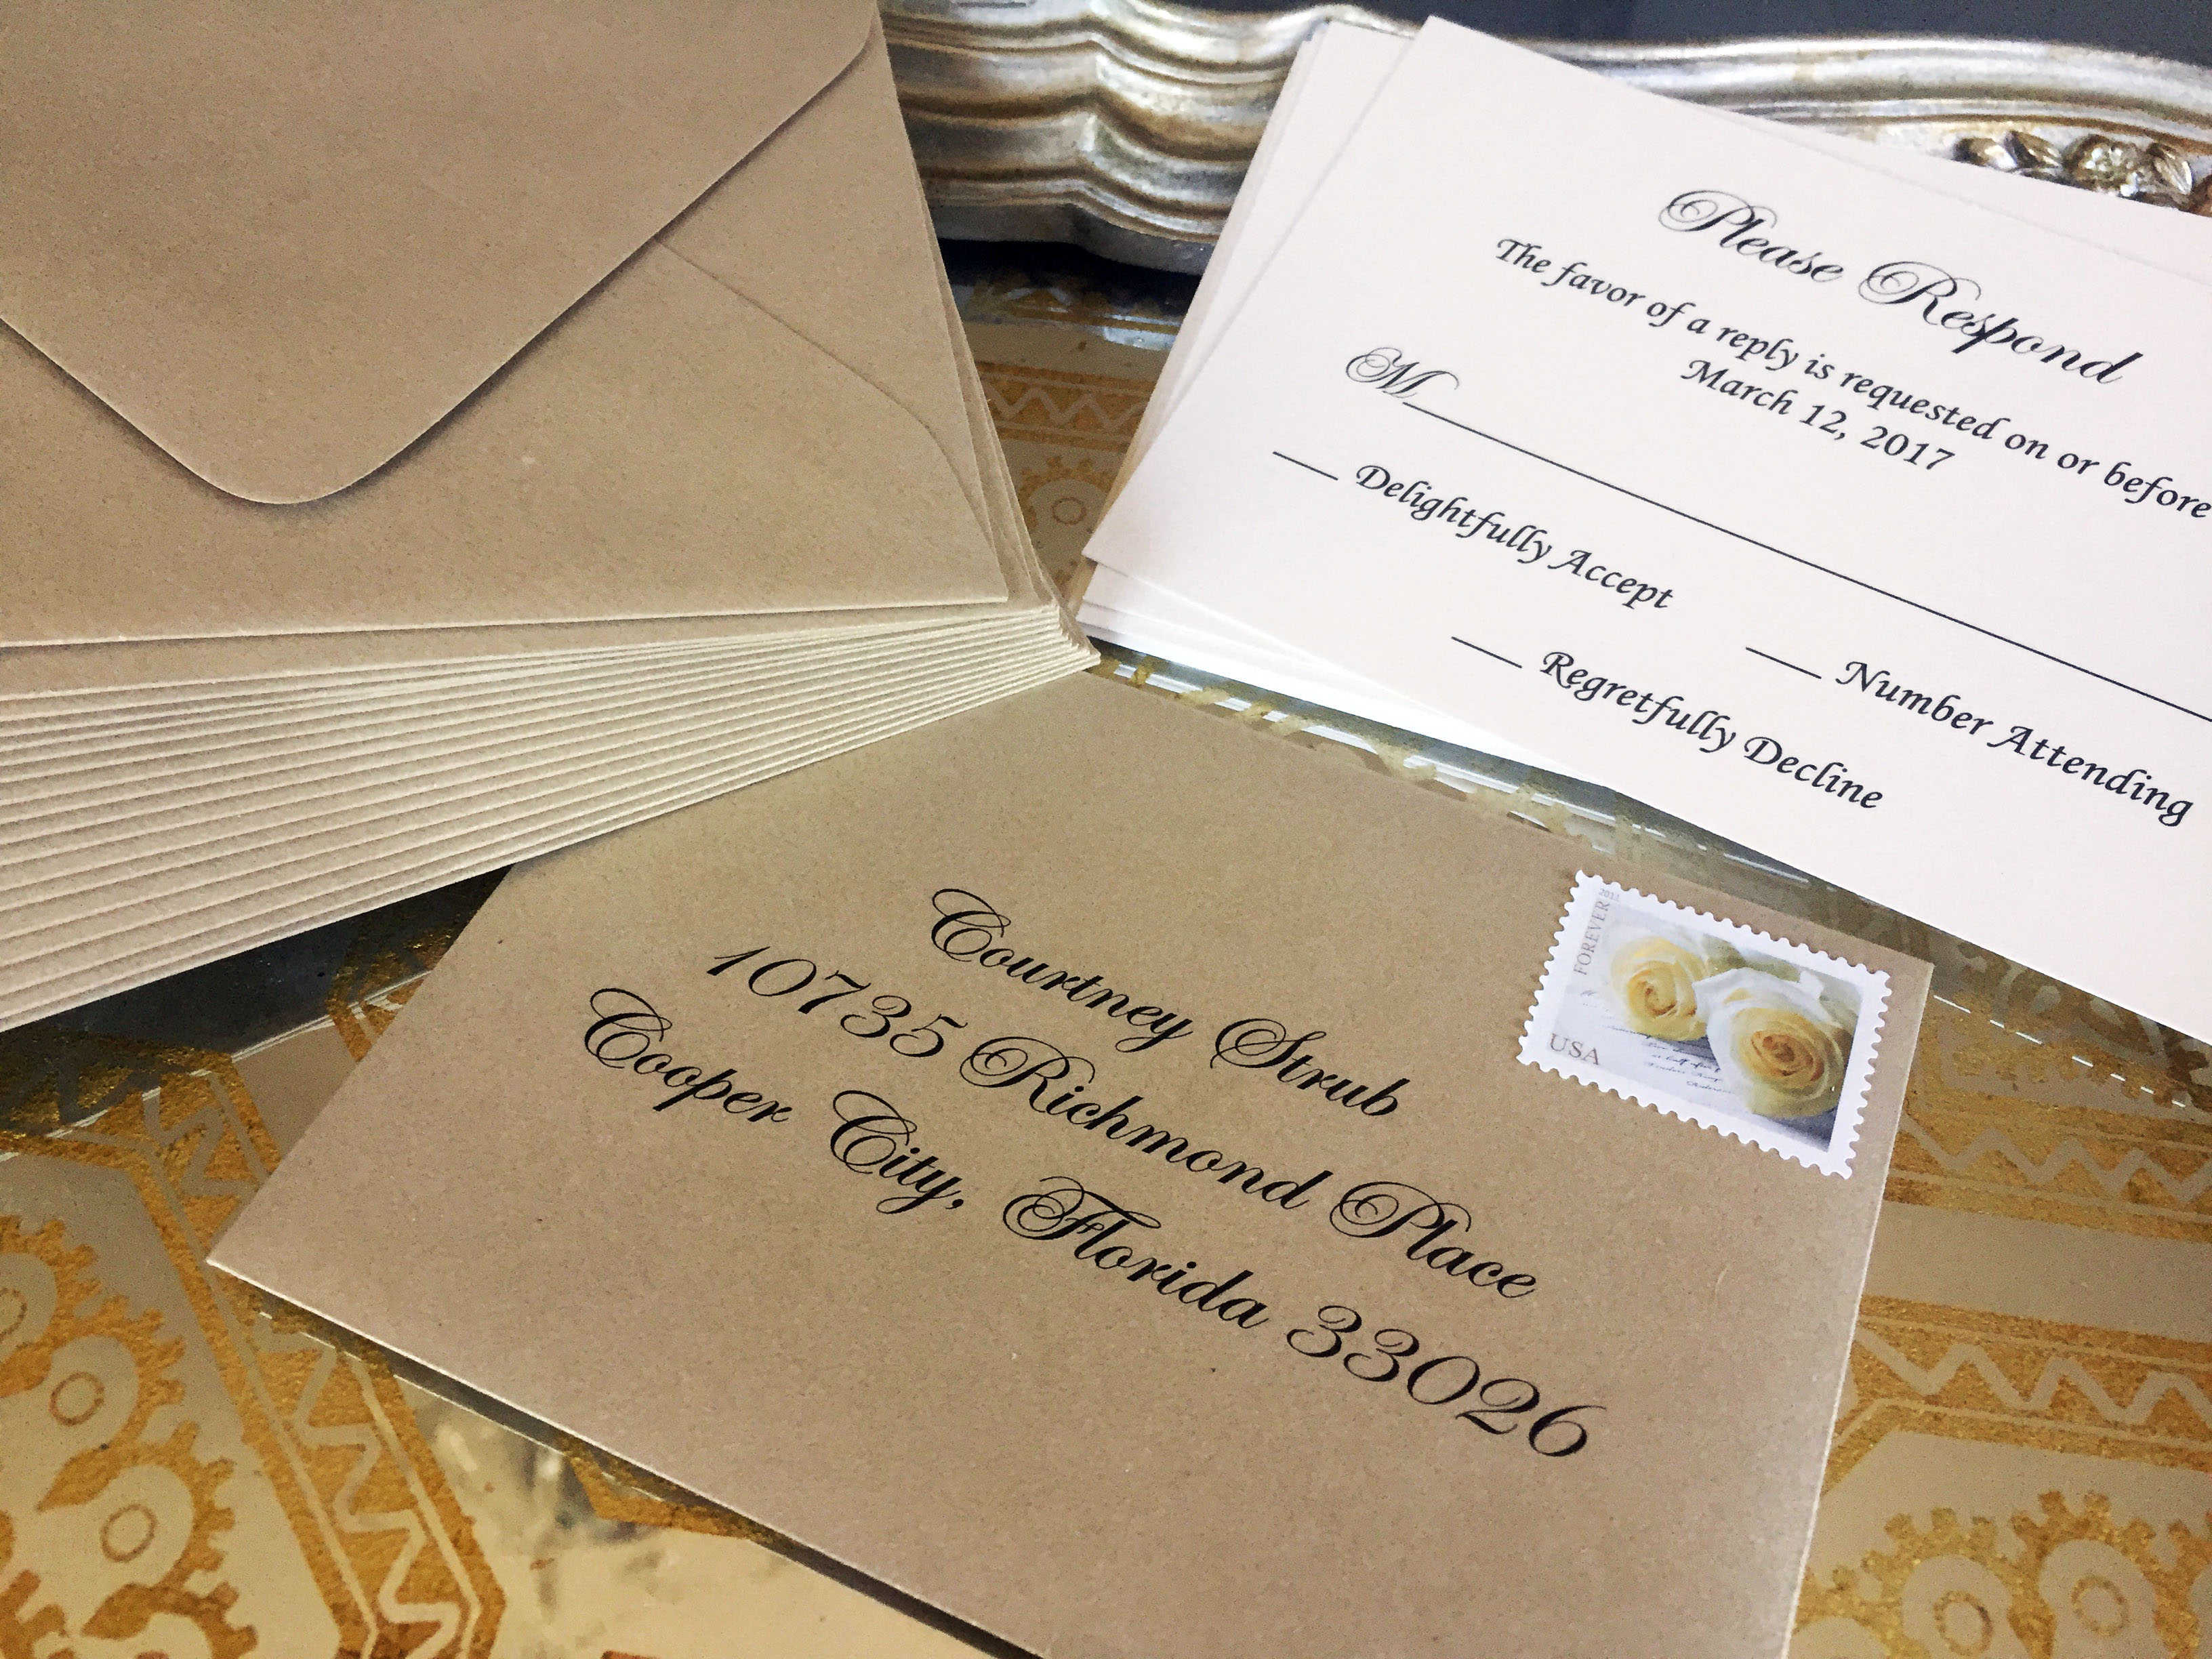 When To Mail Wedding Invitations: 5 Steps To Mailing Wedding Invitations